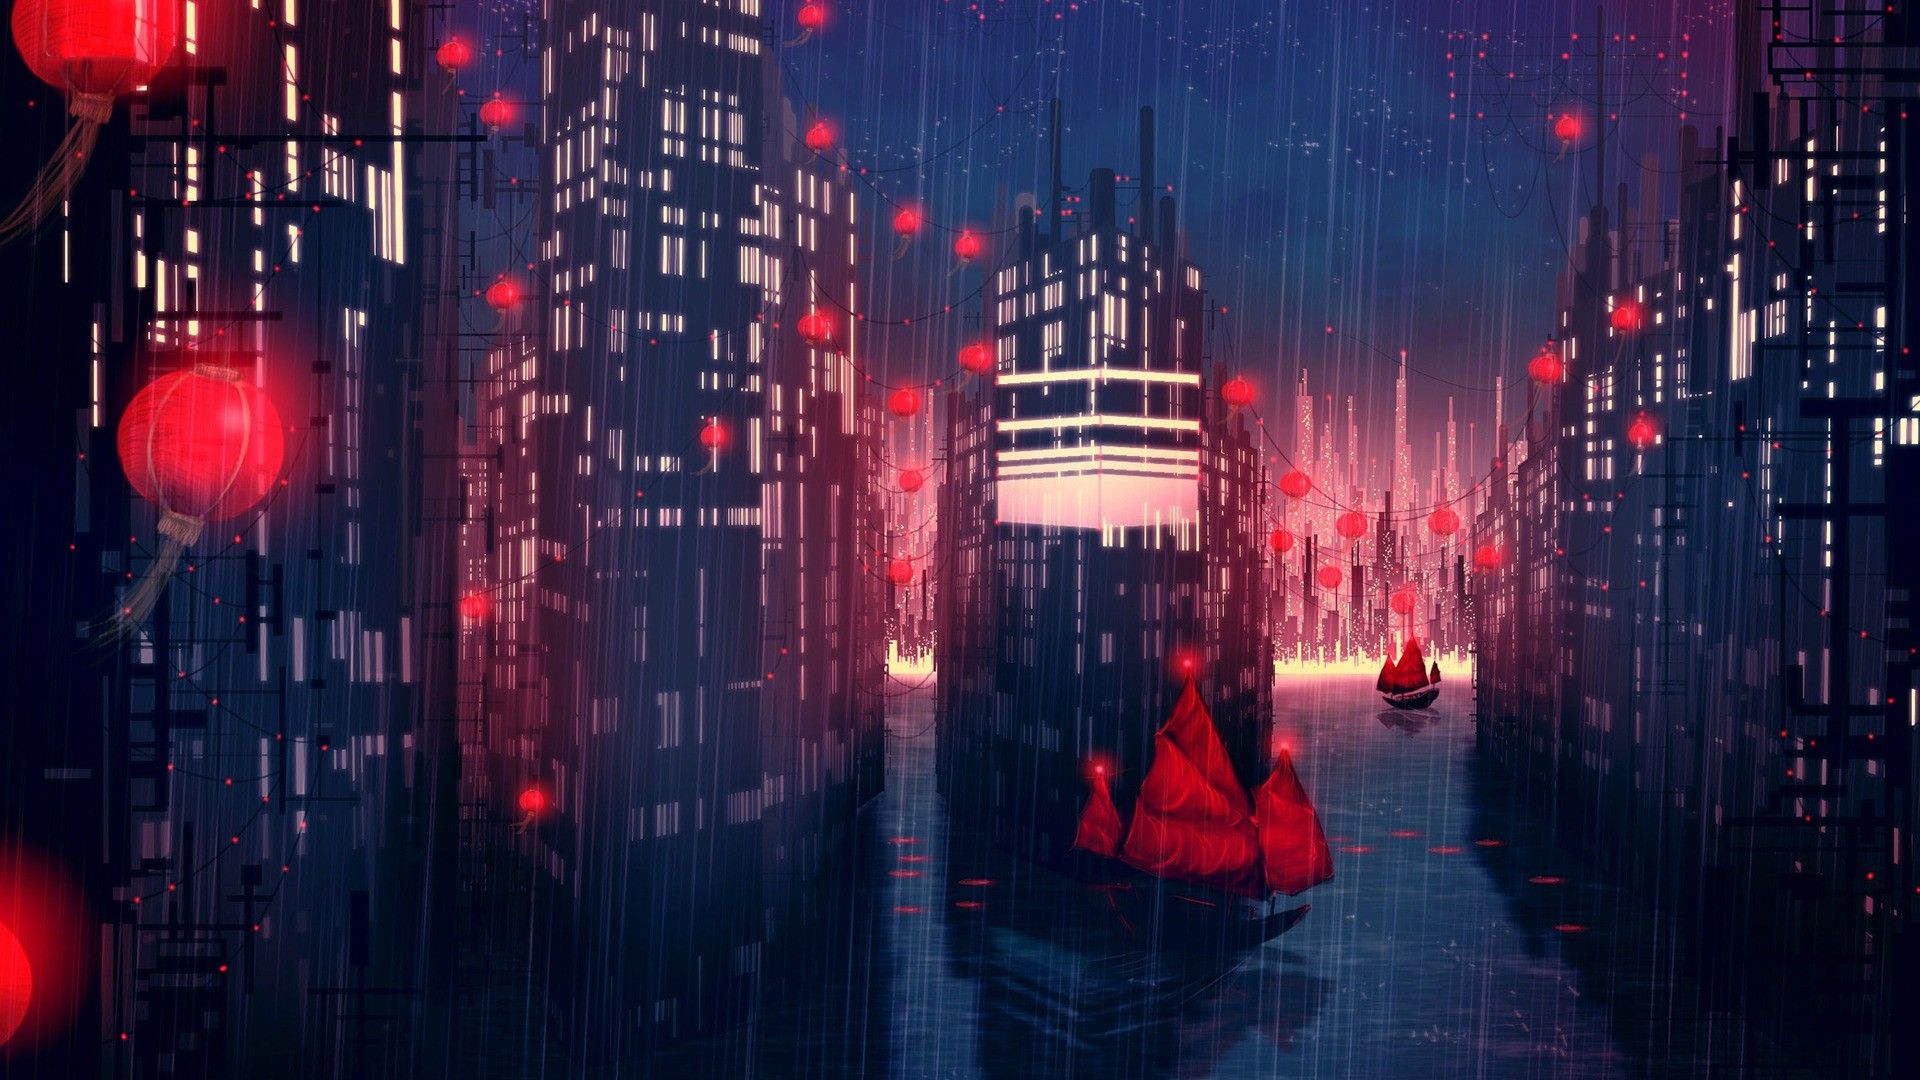 Wallpaper Girl On Boat 1440p Rain City Artwork Fantasy Art Concept Art Boat Red